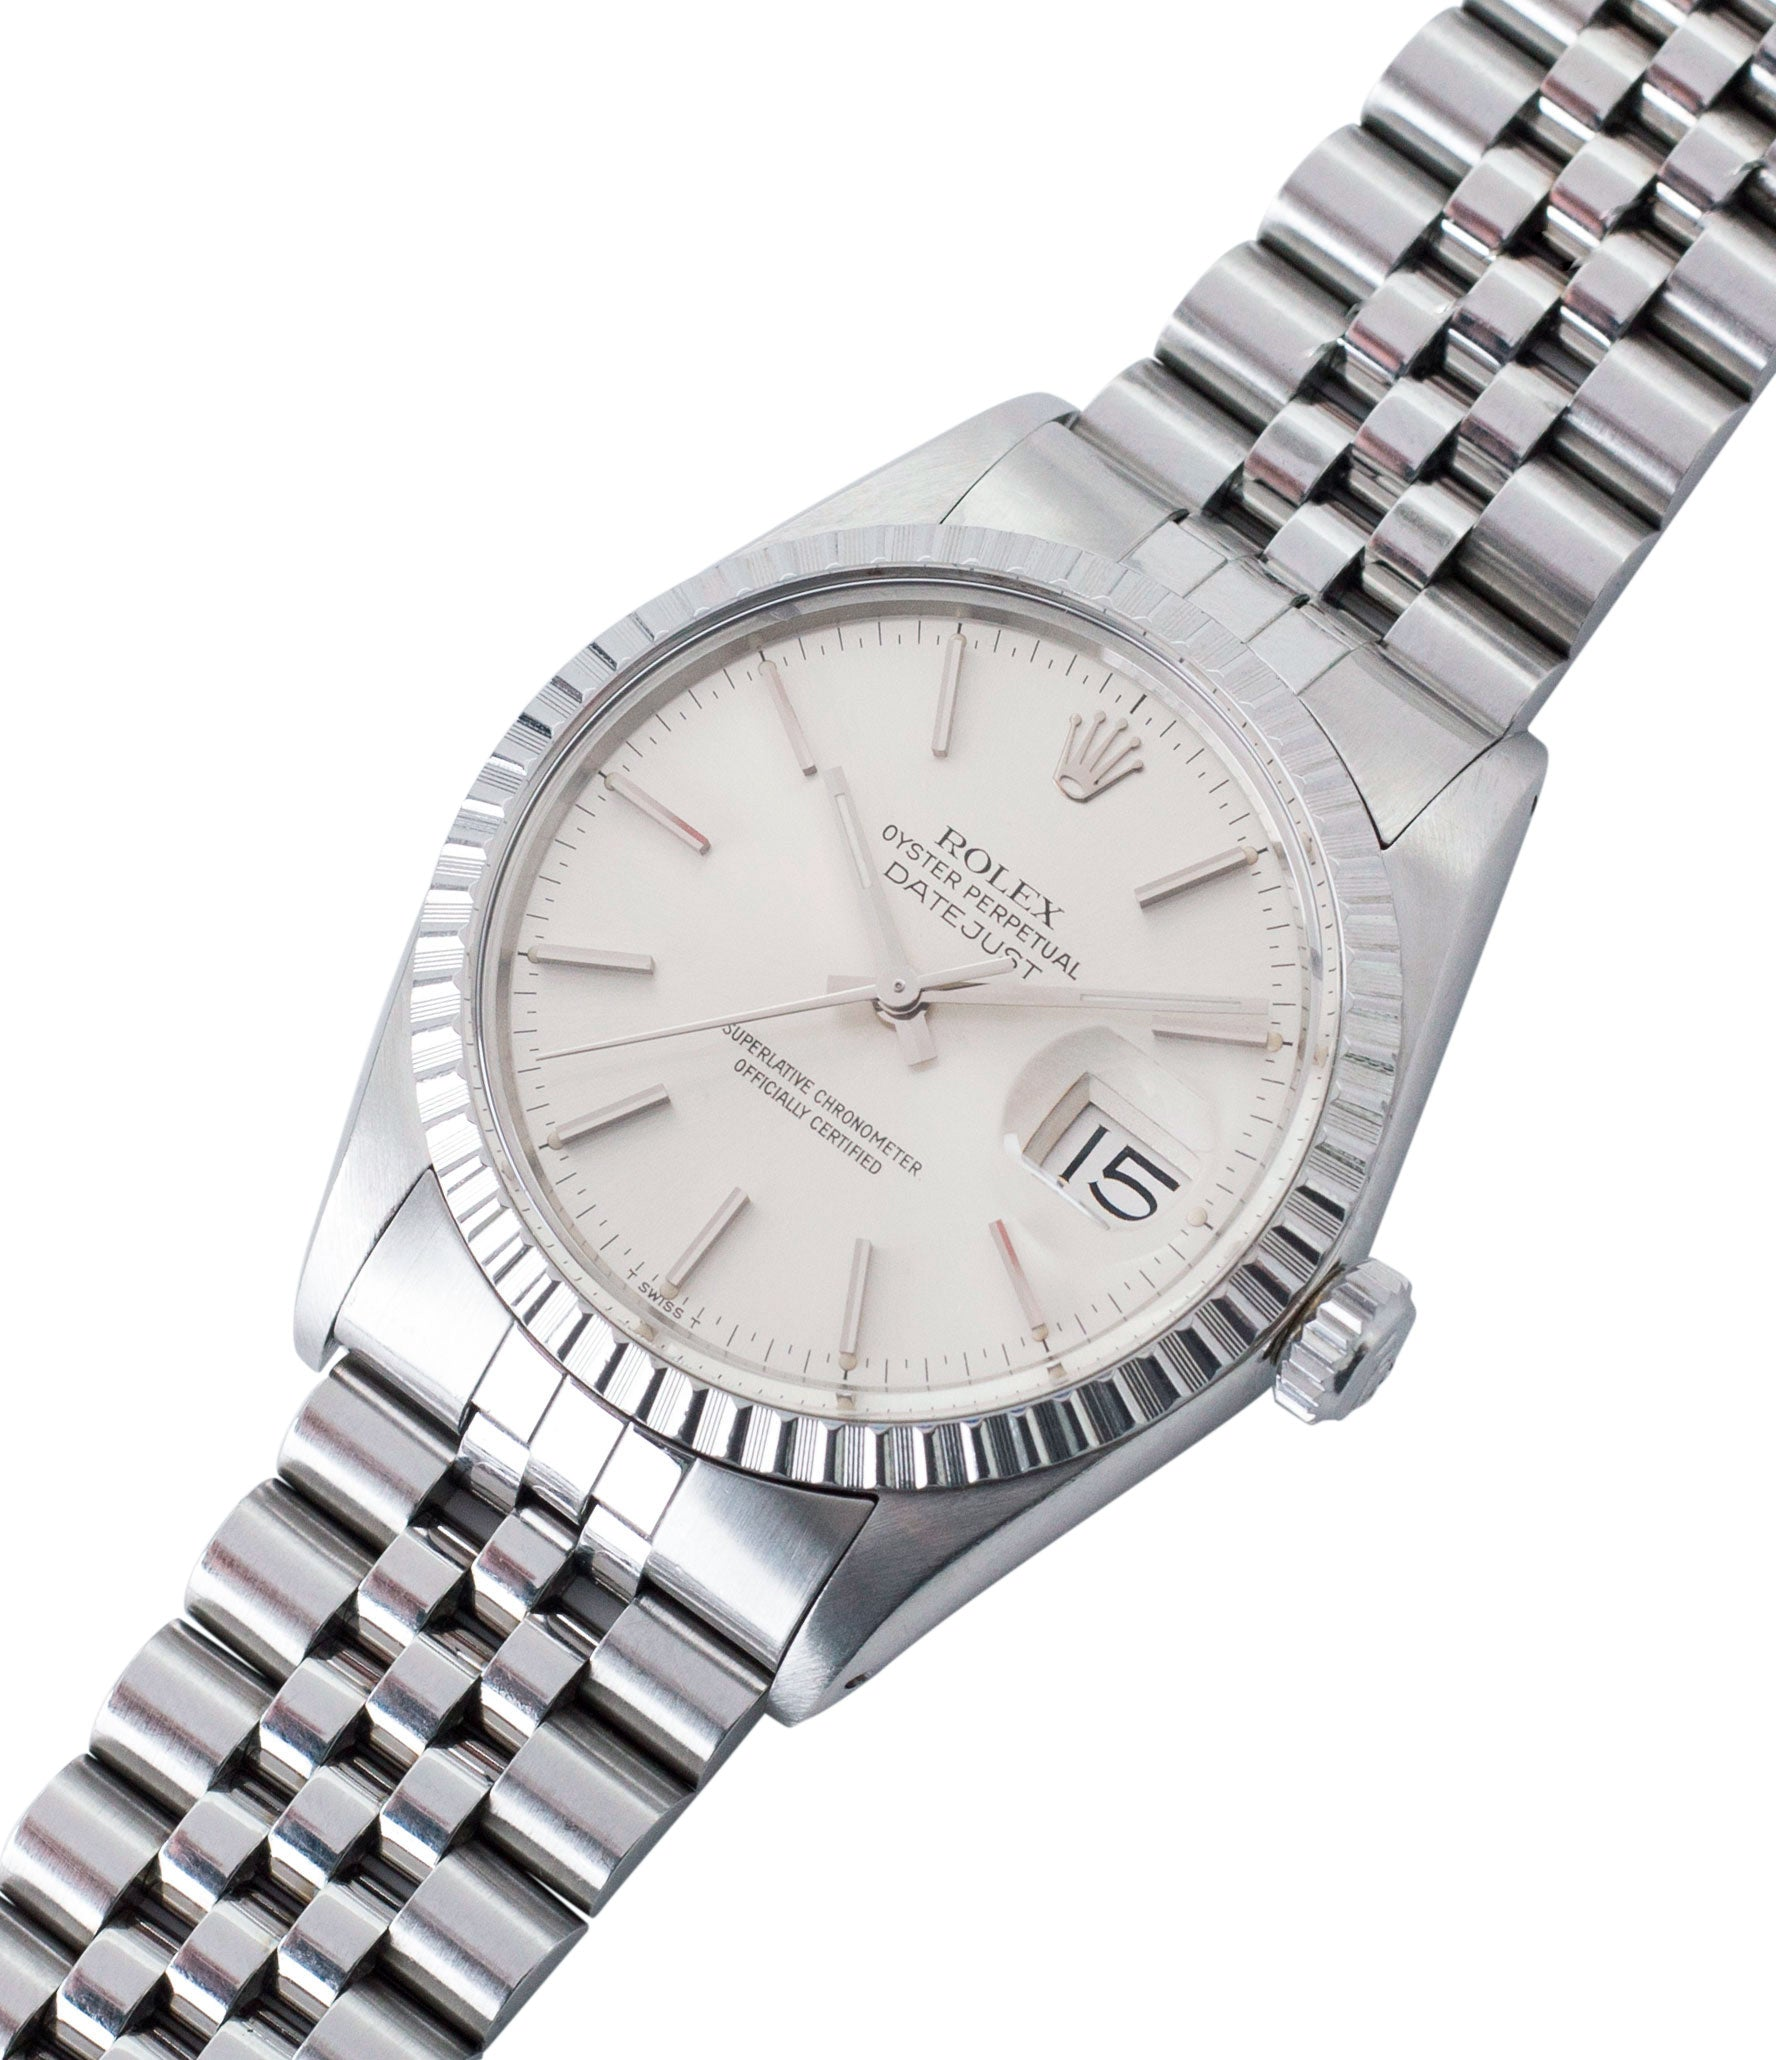 buying vintage full set Rolex Oyster Perpetual Datejust 16030 steel automatic silver dial watch Jubilee bracelet for sale online at A Collected Man London UK vintage watch specialist